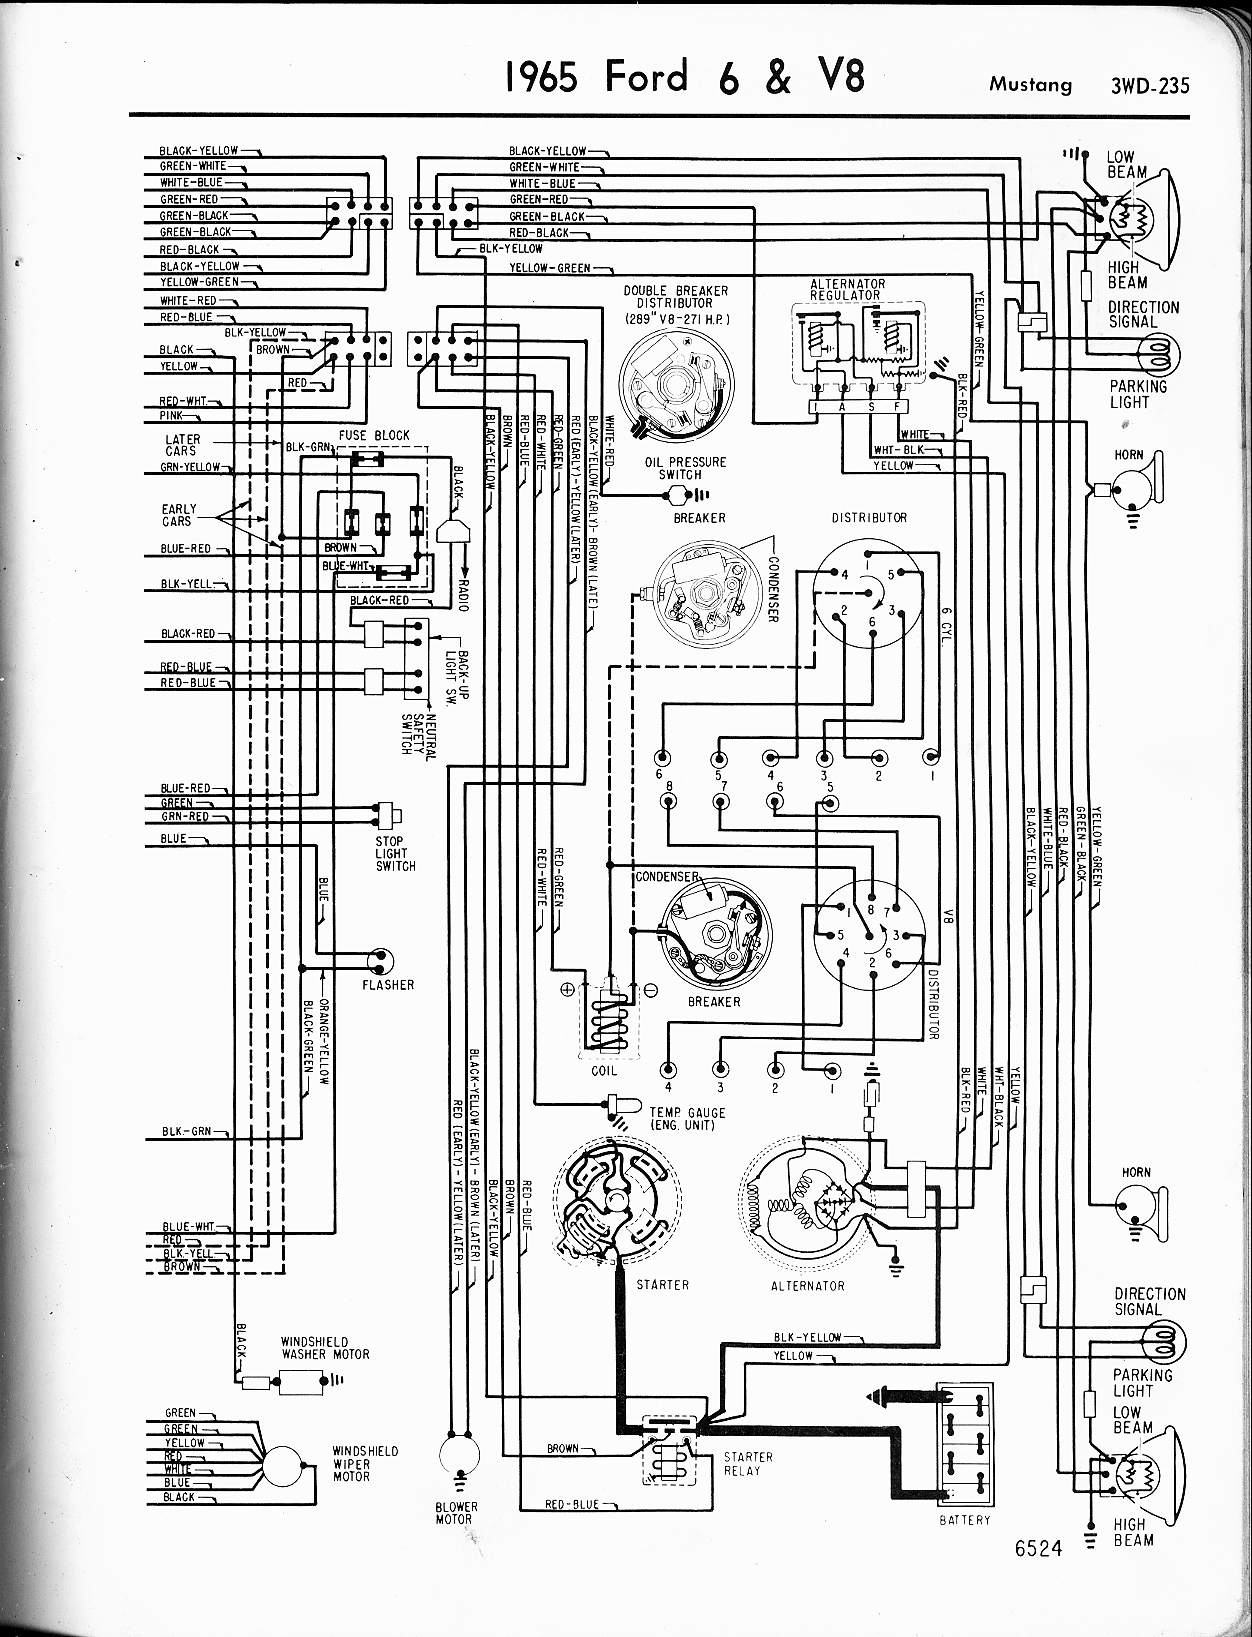 Ford Diagrams 87 Mustang Main Harness Wiring Diagram Free Picture 65 2 Drawing B